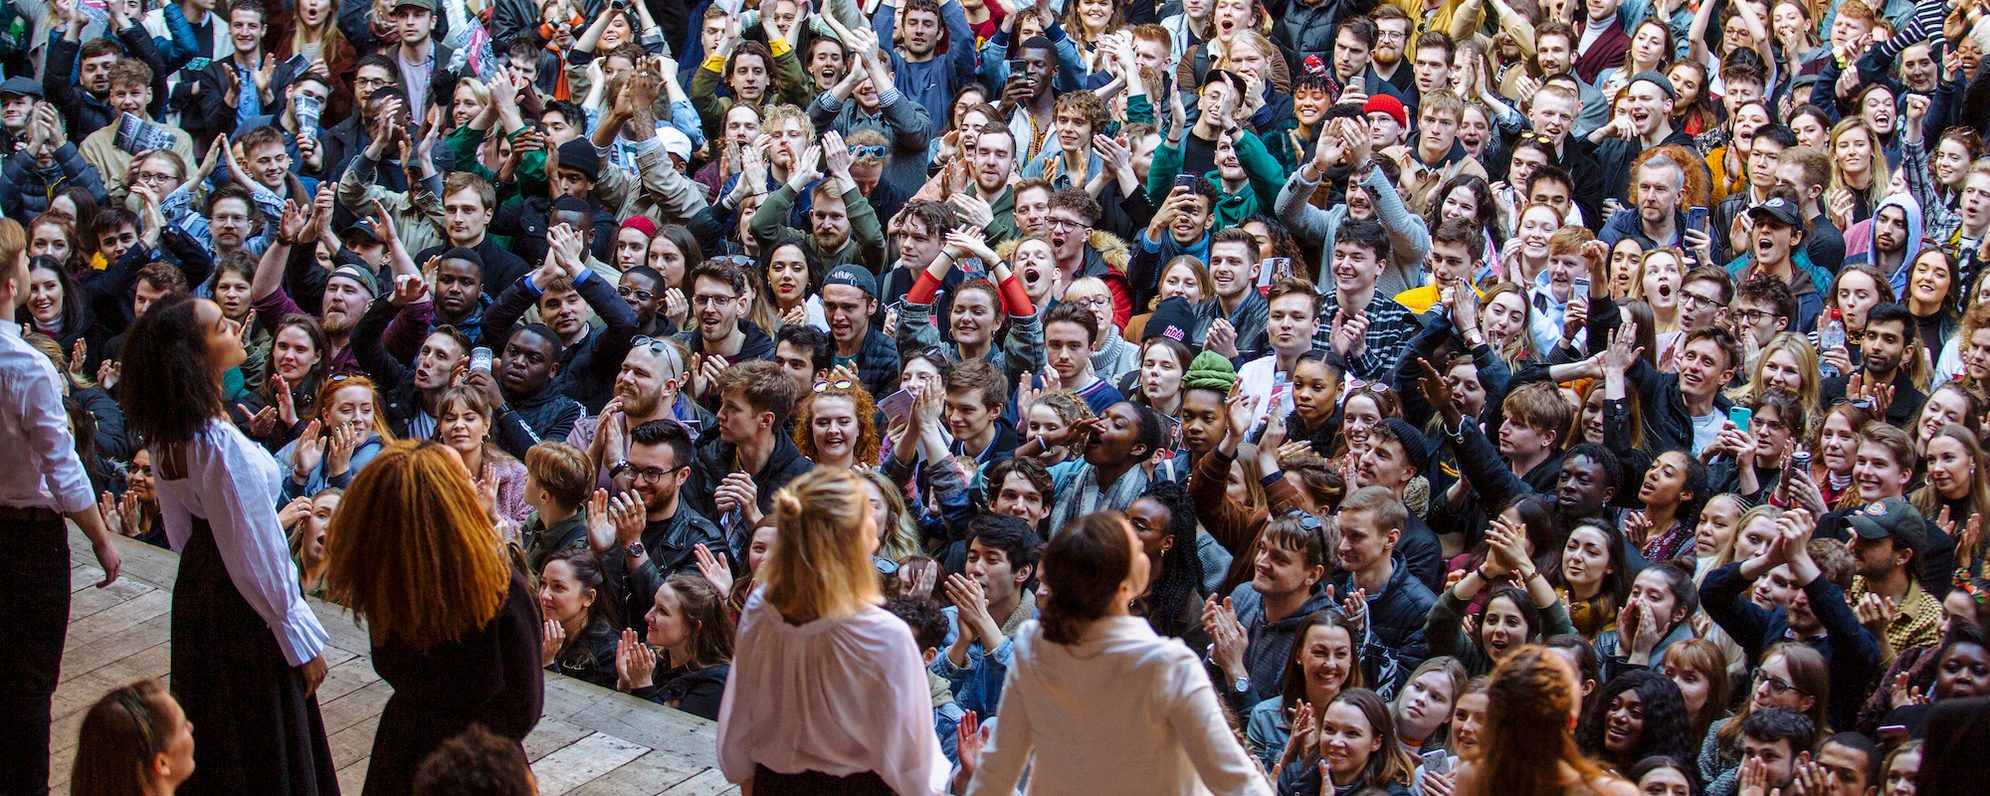 A large group of people stand and watch an outside performance